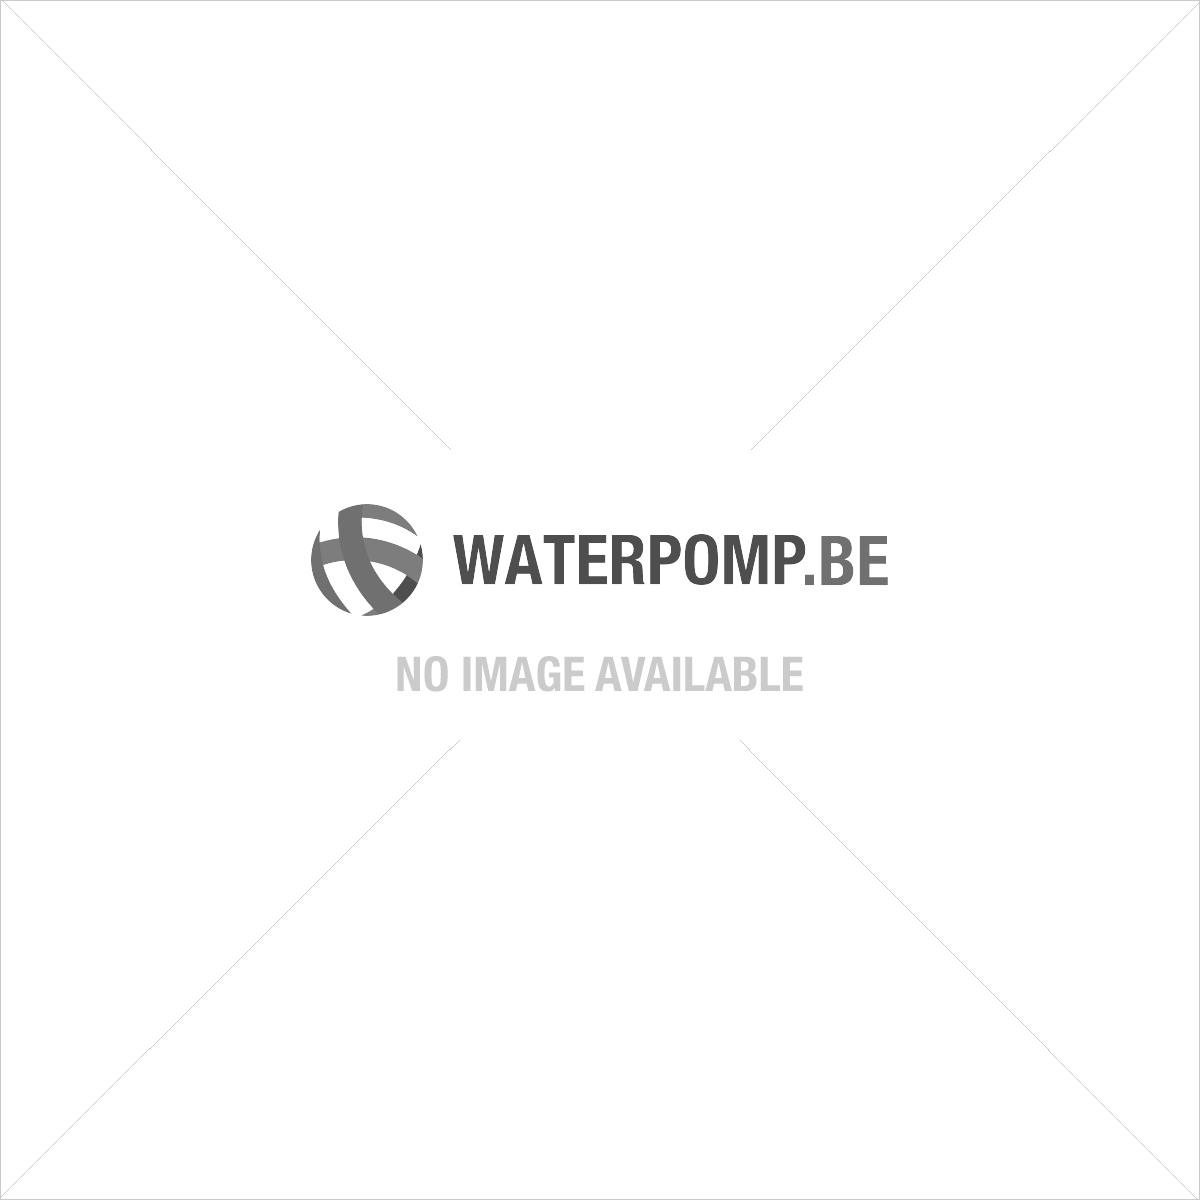 DAB Aquaprof Top 40/50 Regenwaterpomp